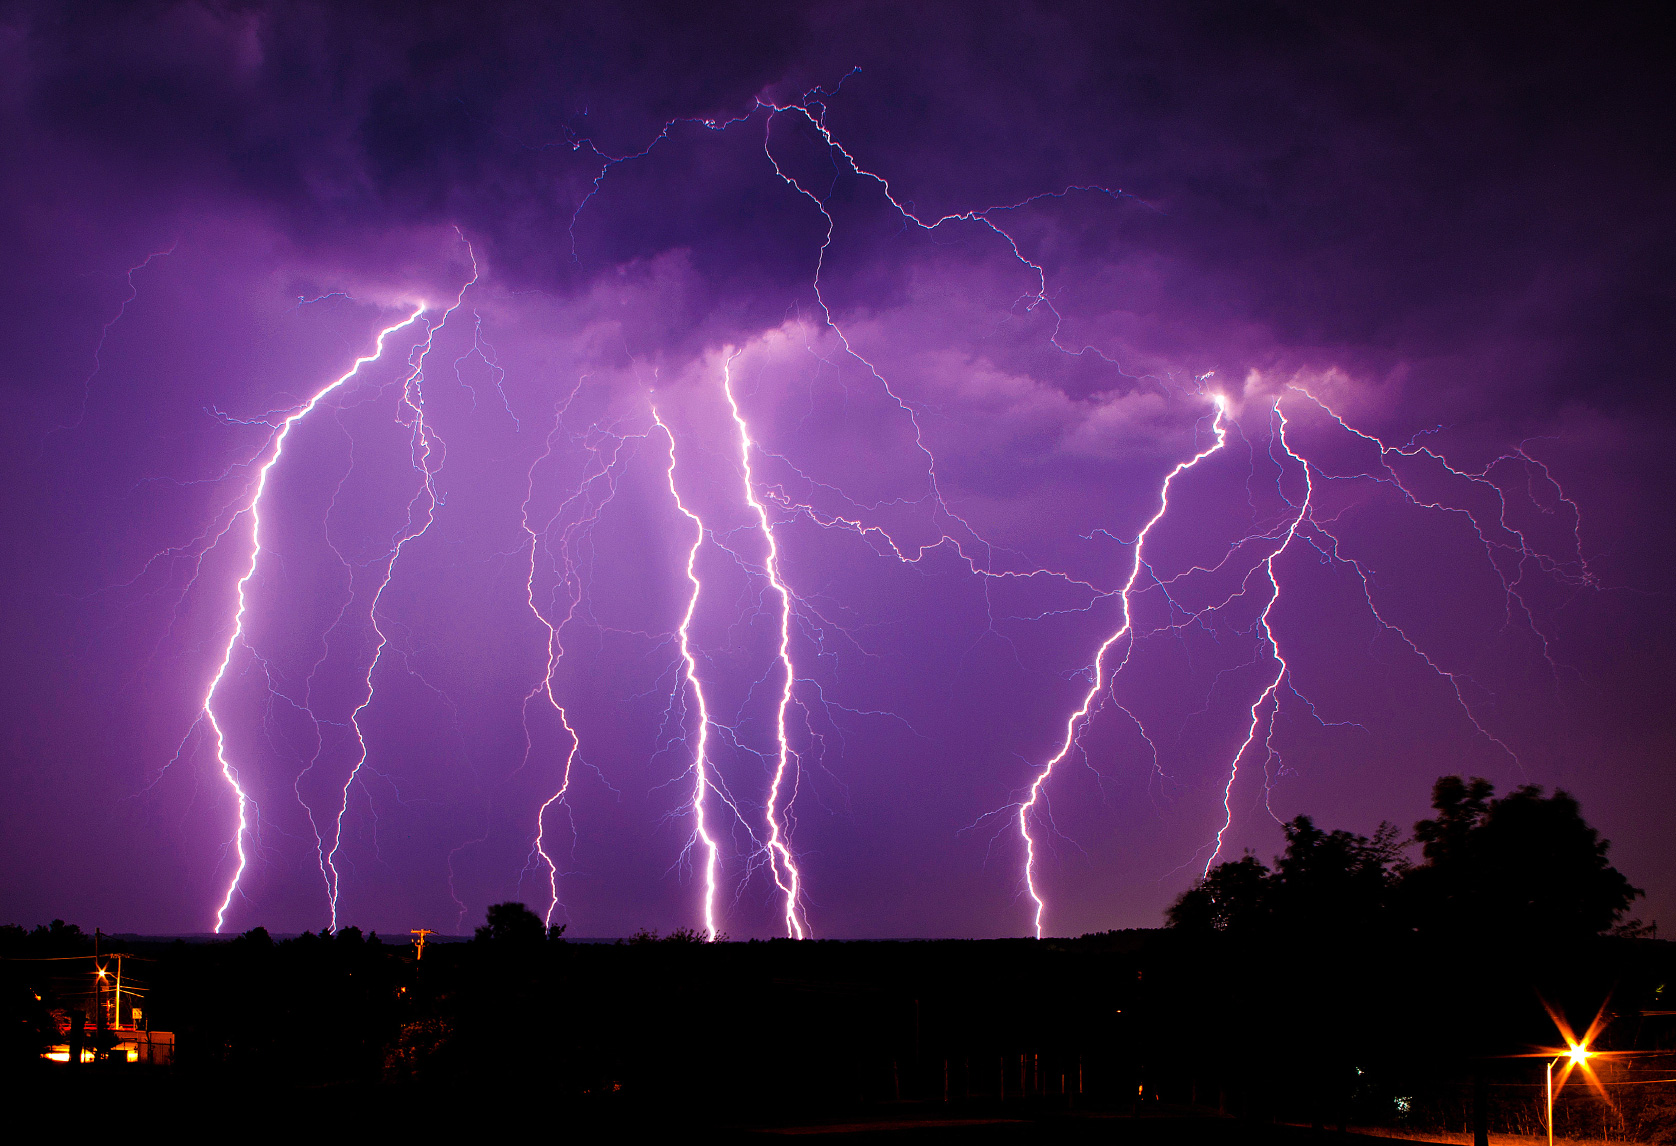 Thunderstorm Facts and How To Stay Safe - Columbia Blog